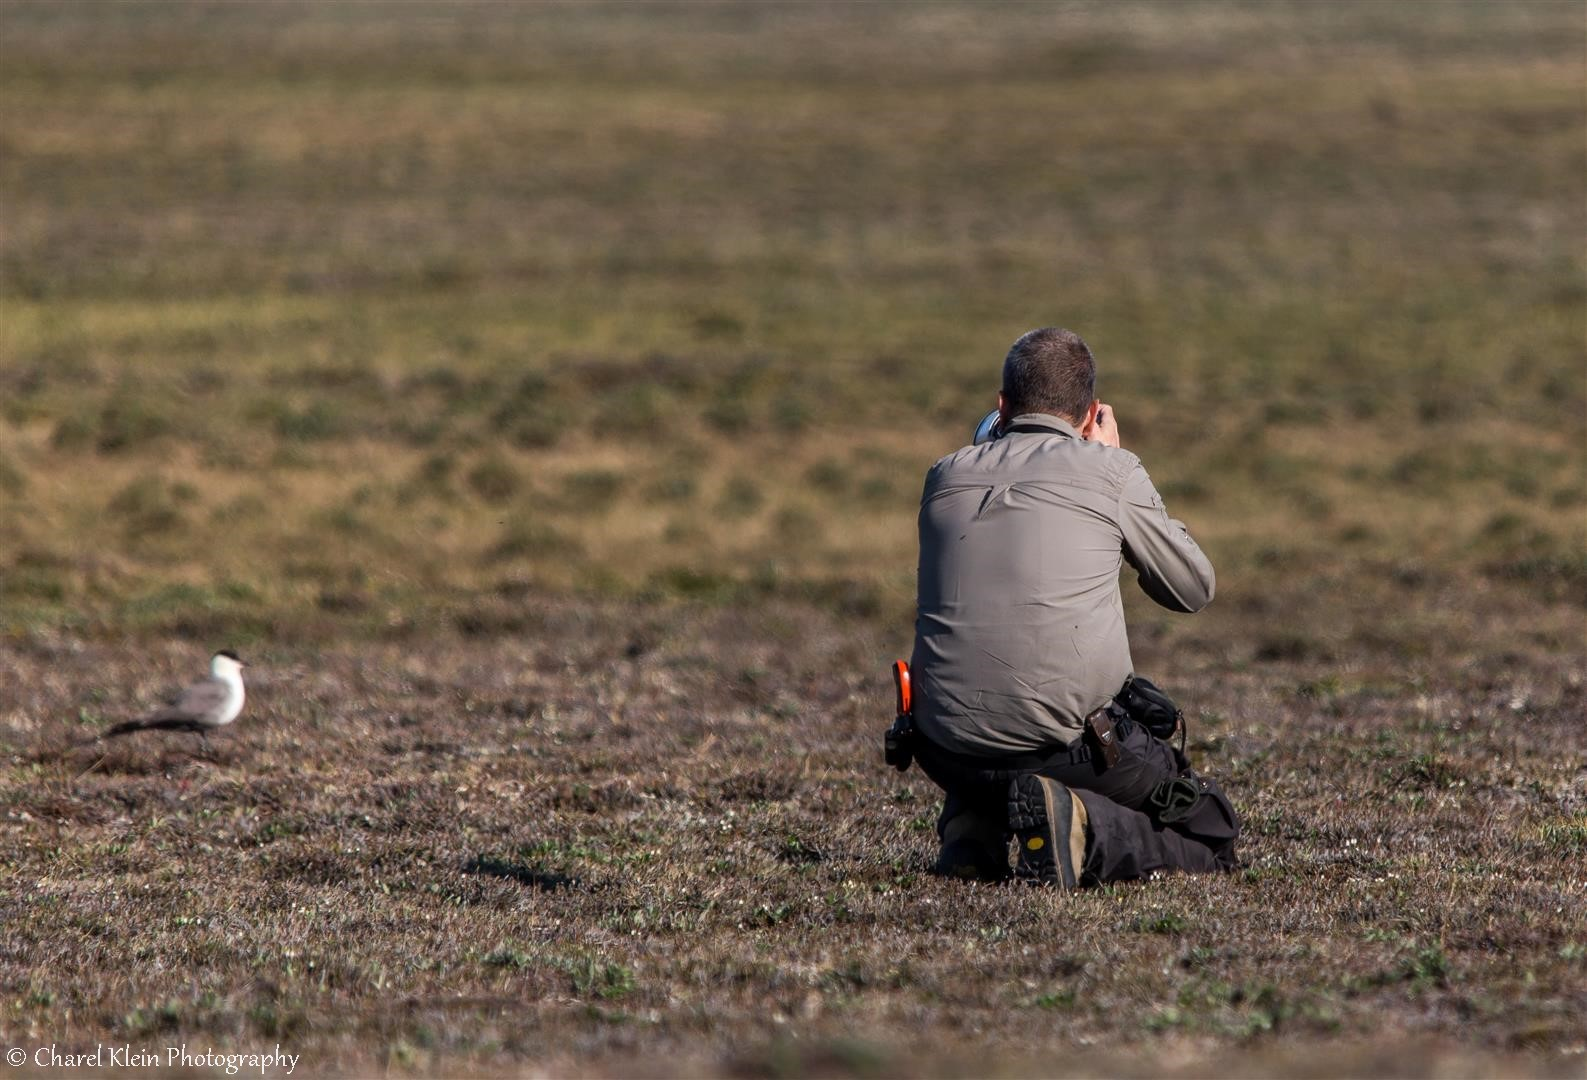 Photographing long-tailed skuas